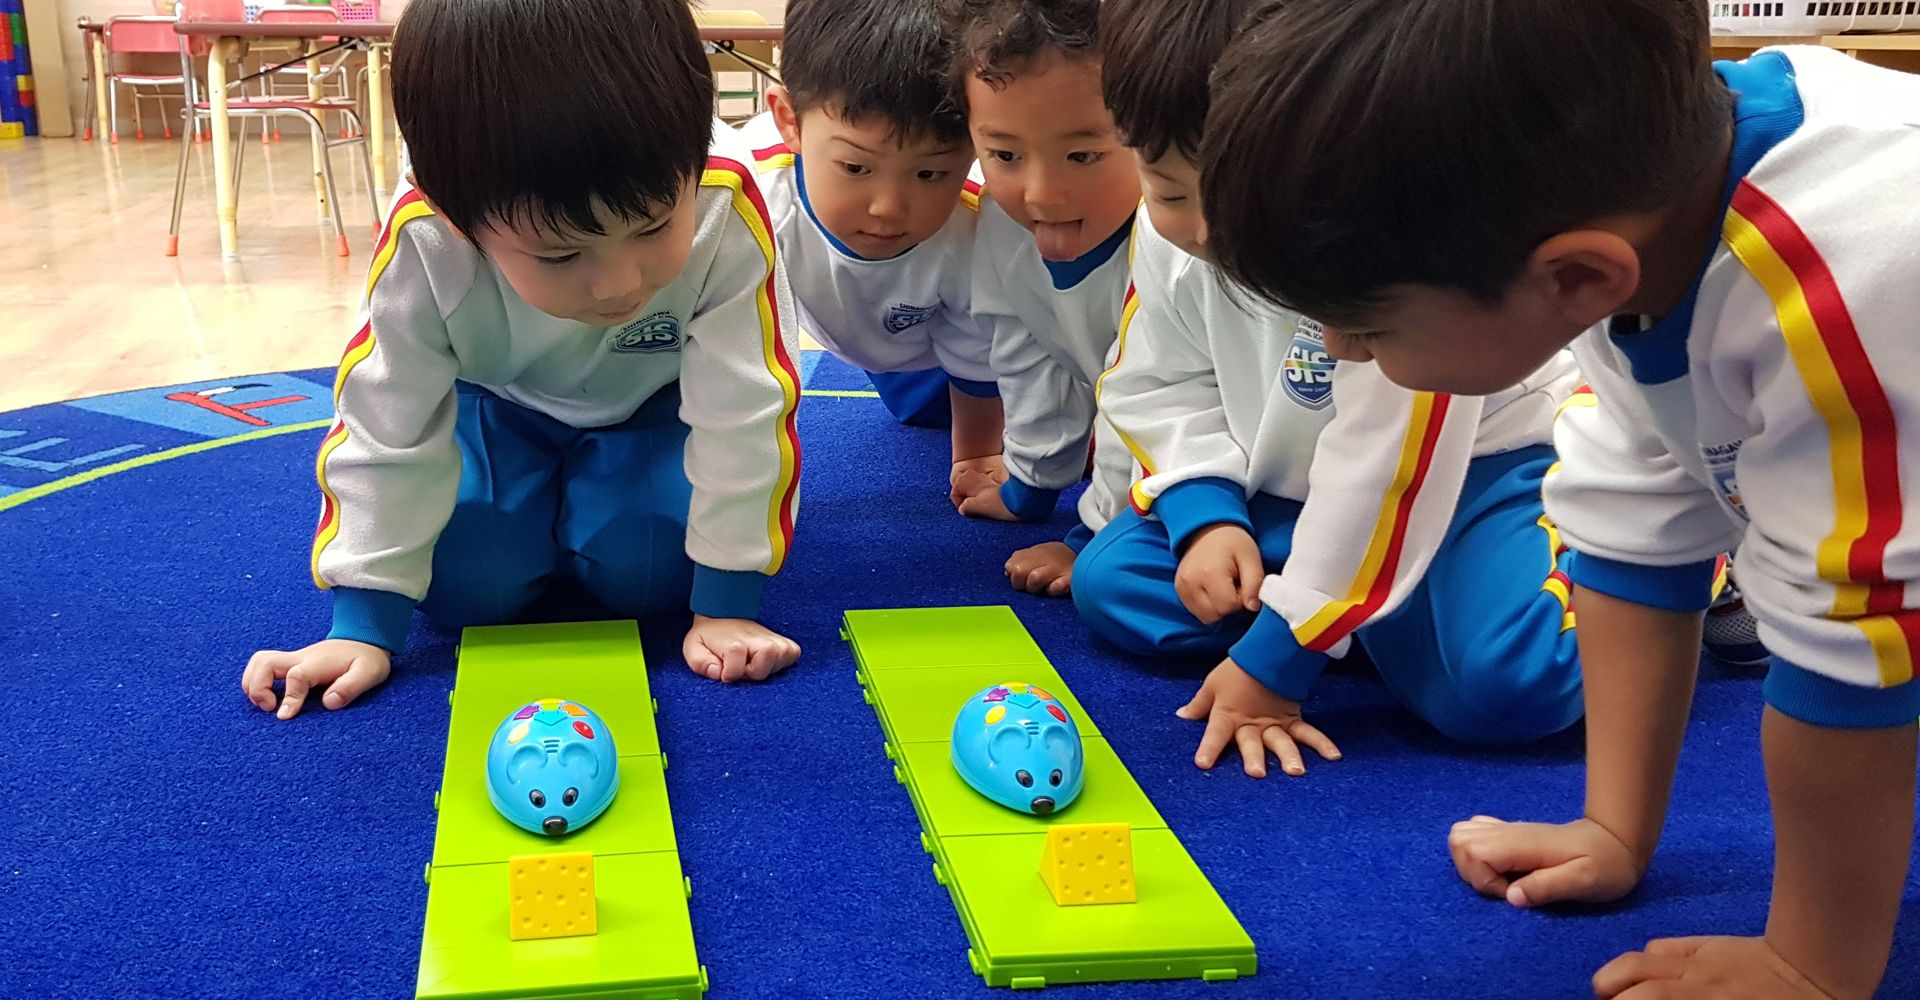 Students learn coding at Shinagawa International School